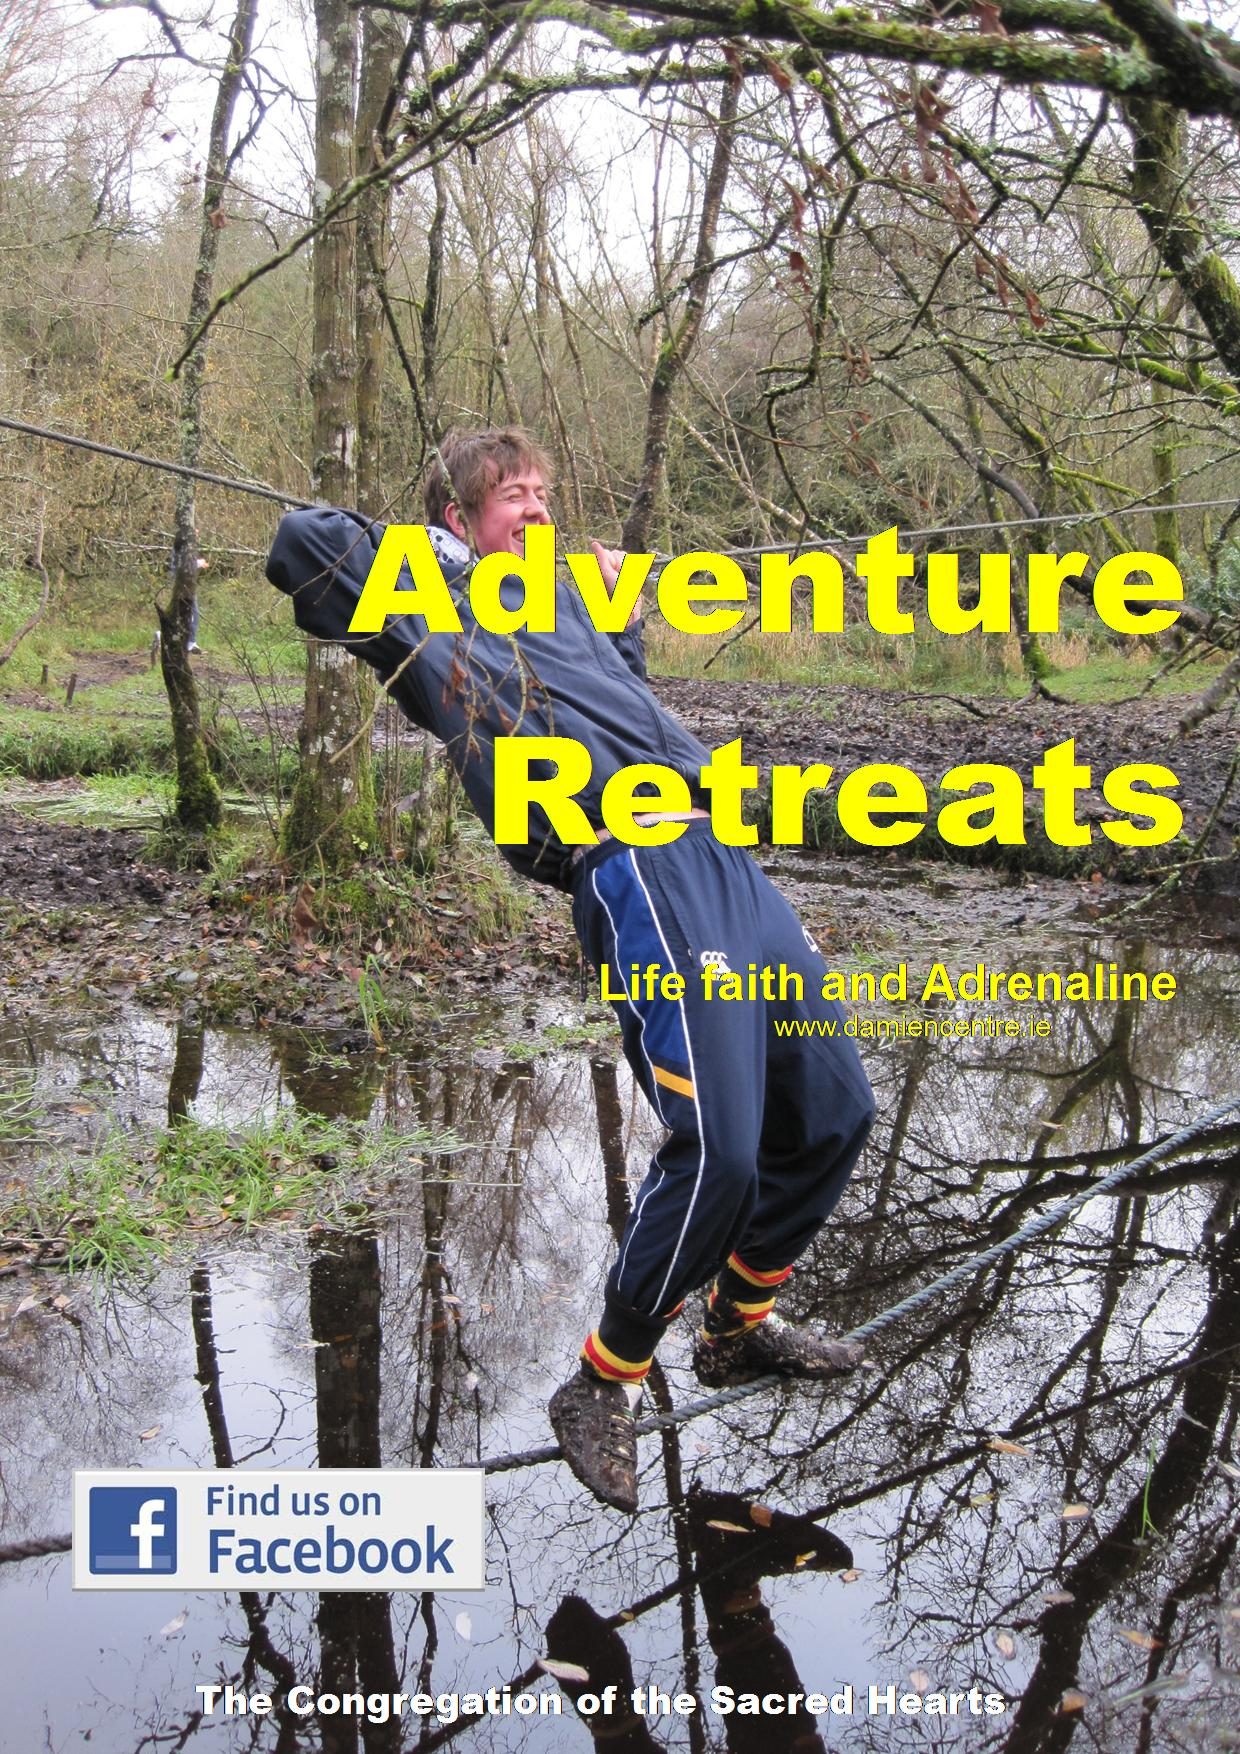 adventure brochure cover 2012